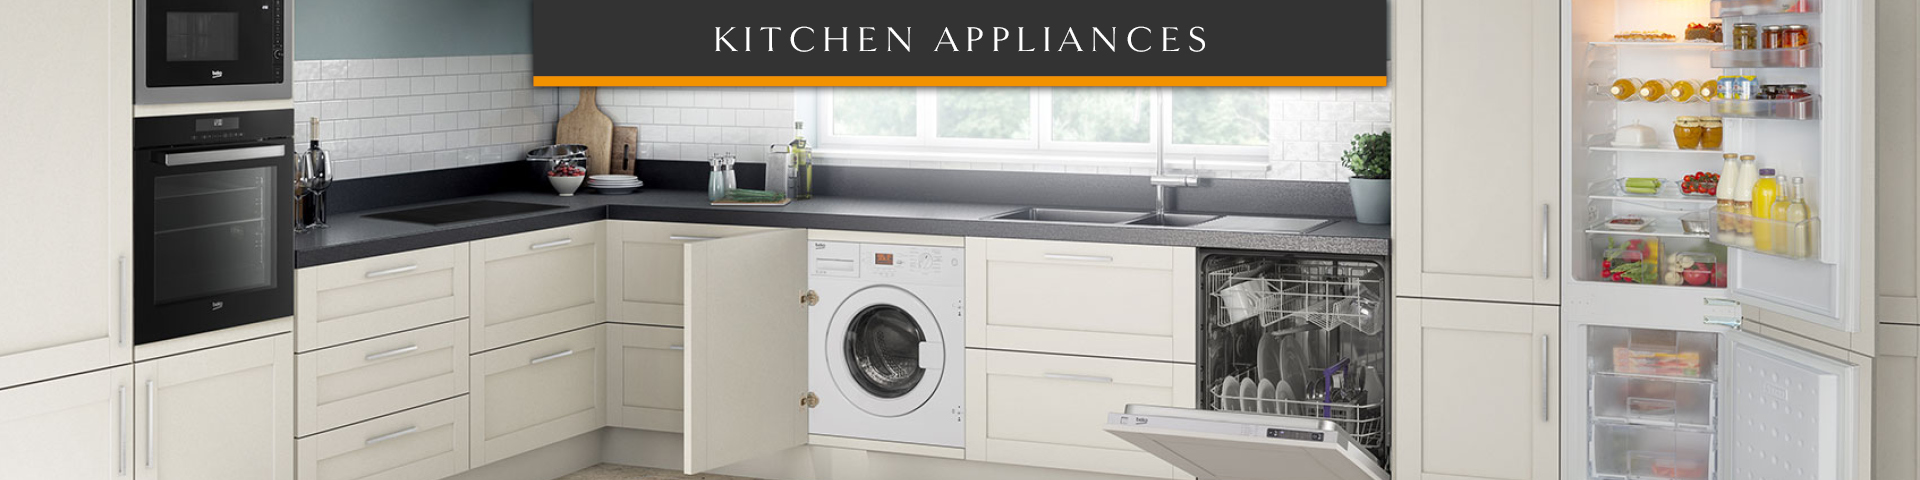 Kitchen Appliances Glasgow